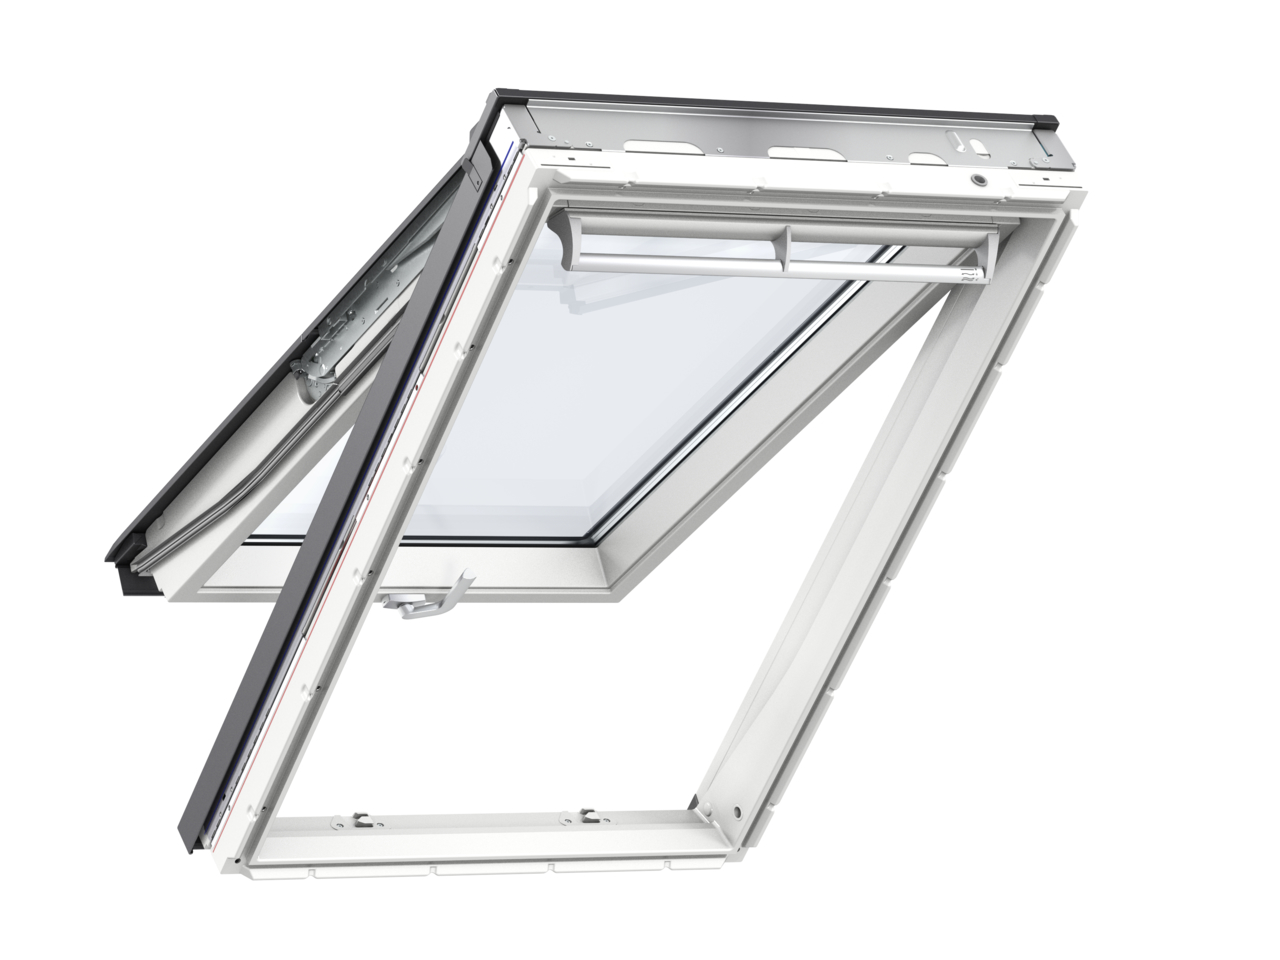 Velux GPU CK04 550 x 980mm Top Hung 60Pane Roof Window - White Polyurethane